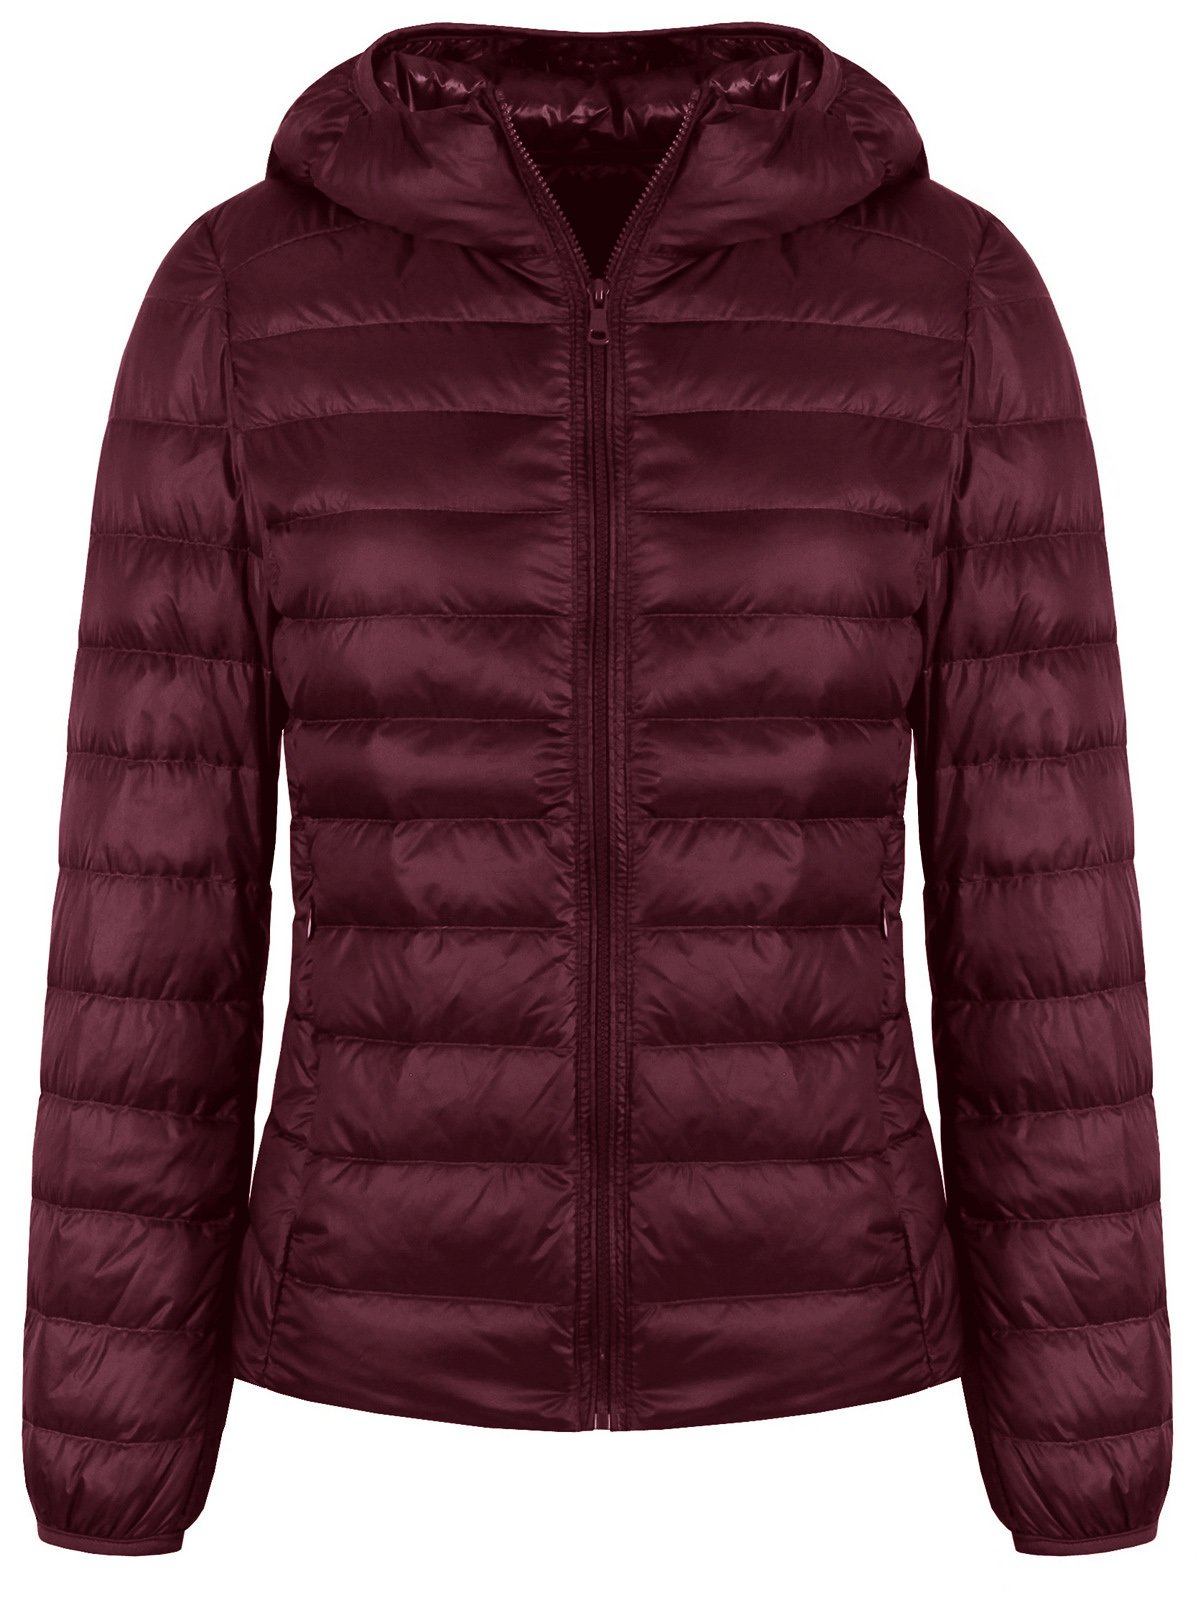 FADTOP Women's Hooded Packable Ultra Light Weight Short Down Jacket Down Coat by FADTOP (Image #1)